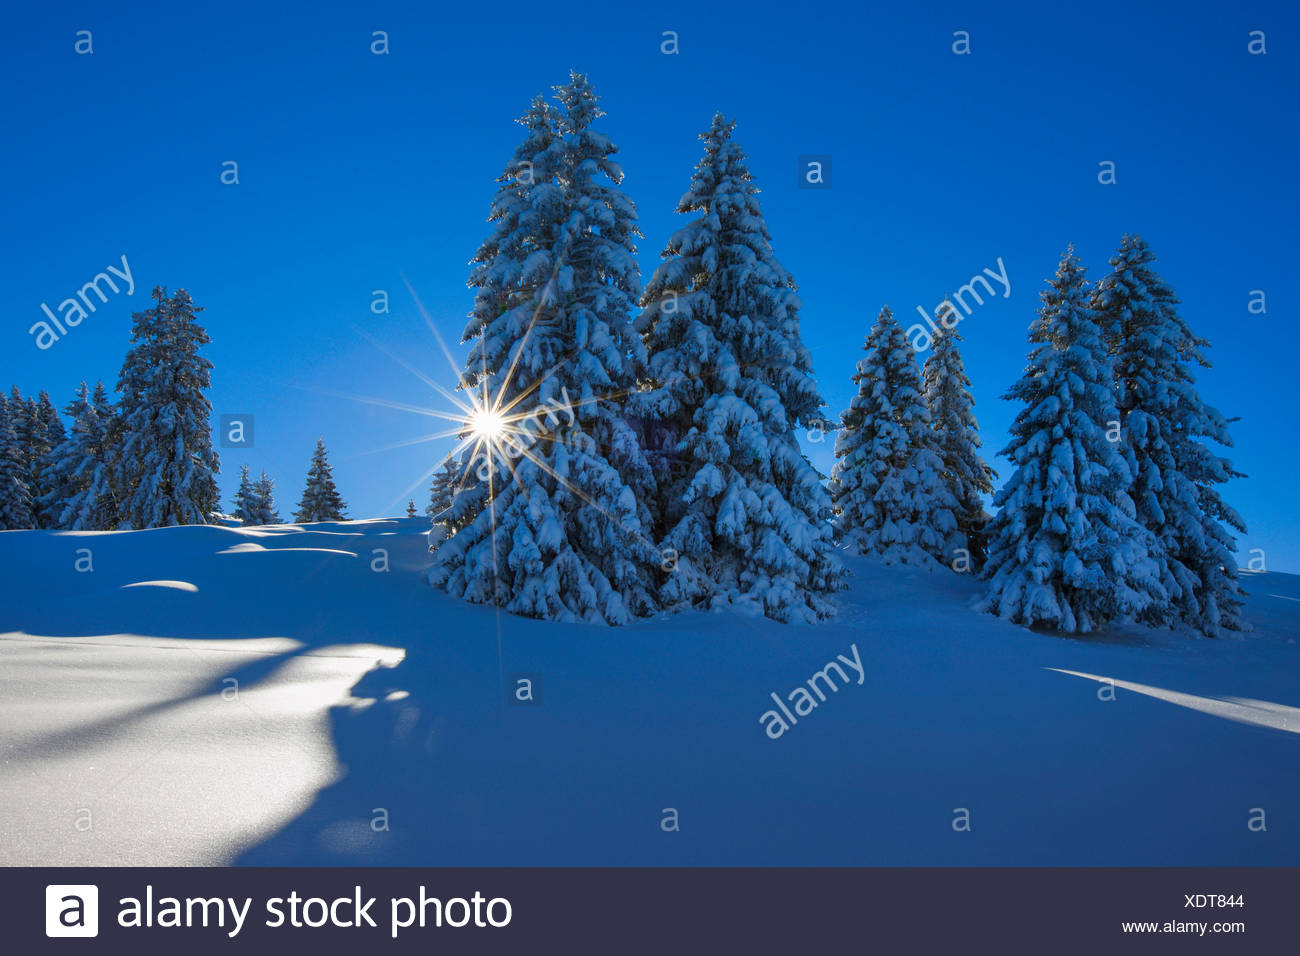 Norway spruce (Picea abies), snow covered spruces at the Flumserberg, Switzerland, St. Gallen - Stock Image